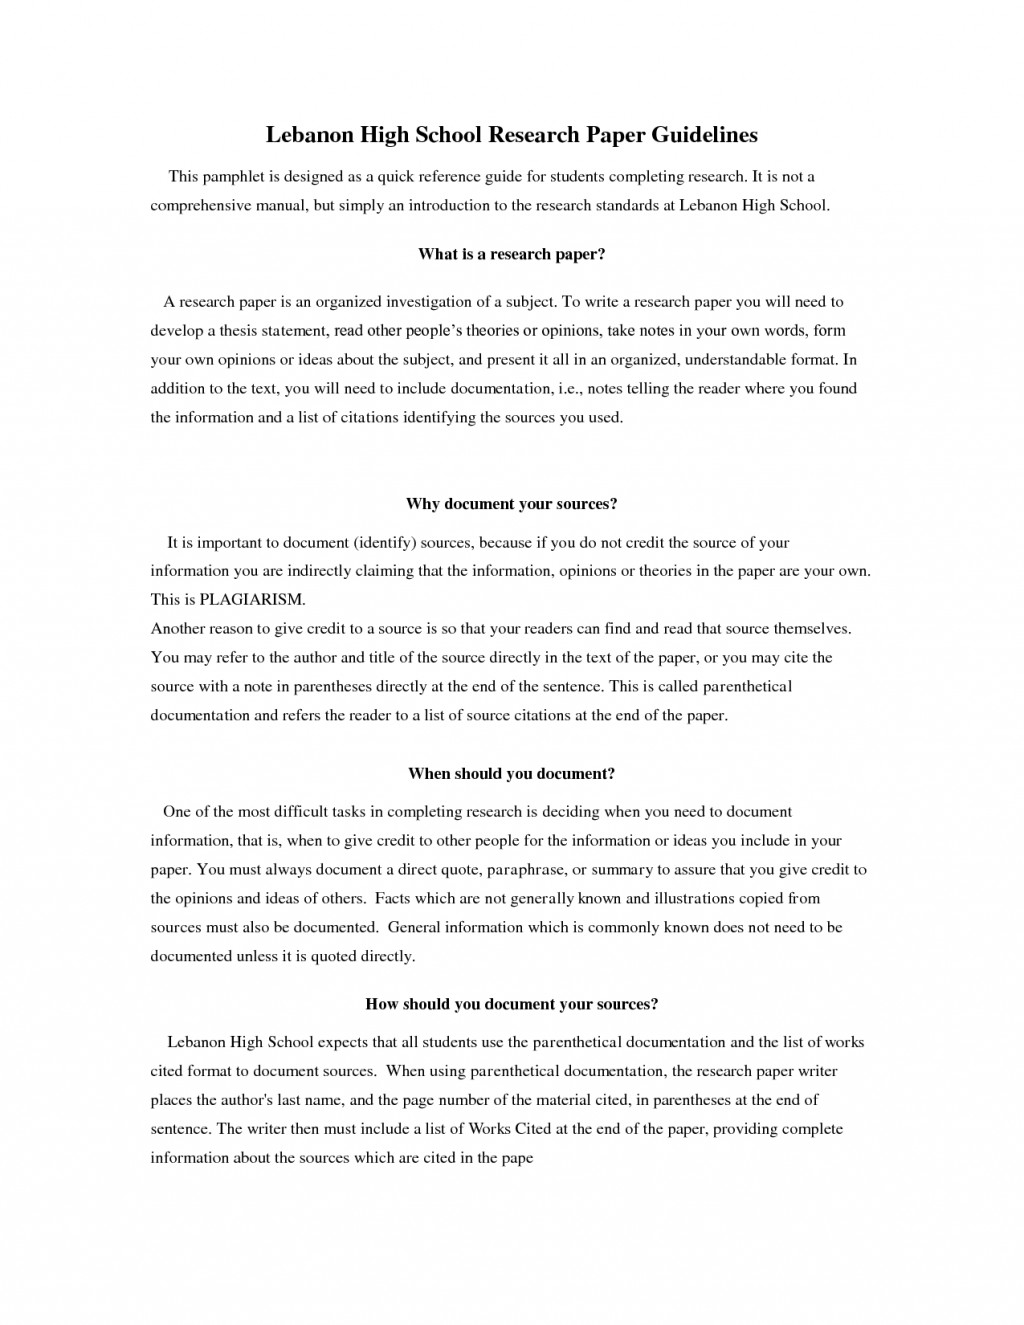 009 Research Paper Interesting Topic Breathtaking For Hot Medical Topics Papers In Education The Philippines Sample About Large